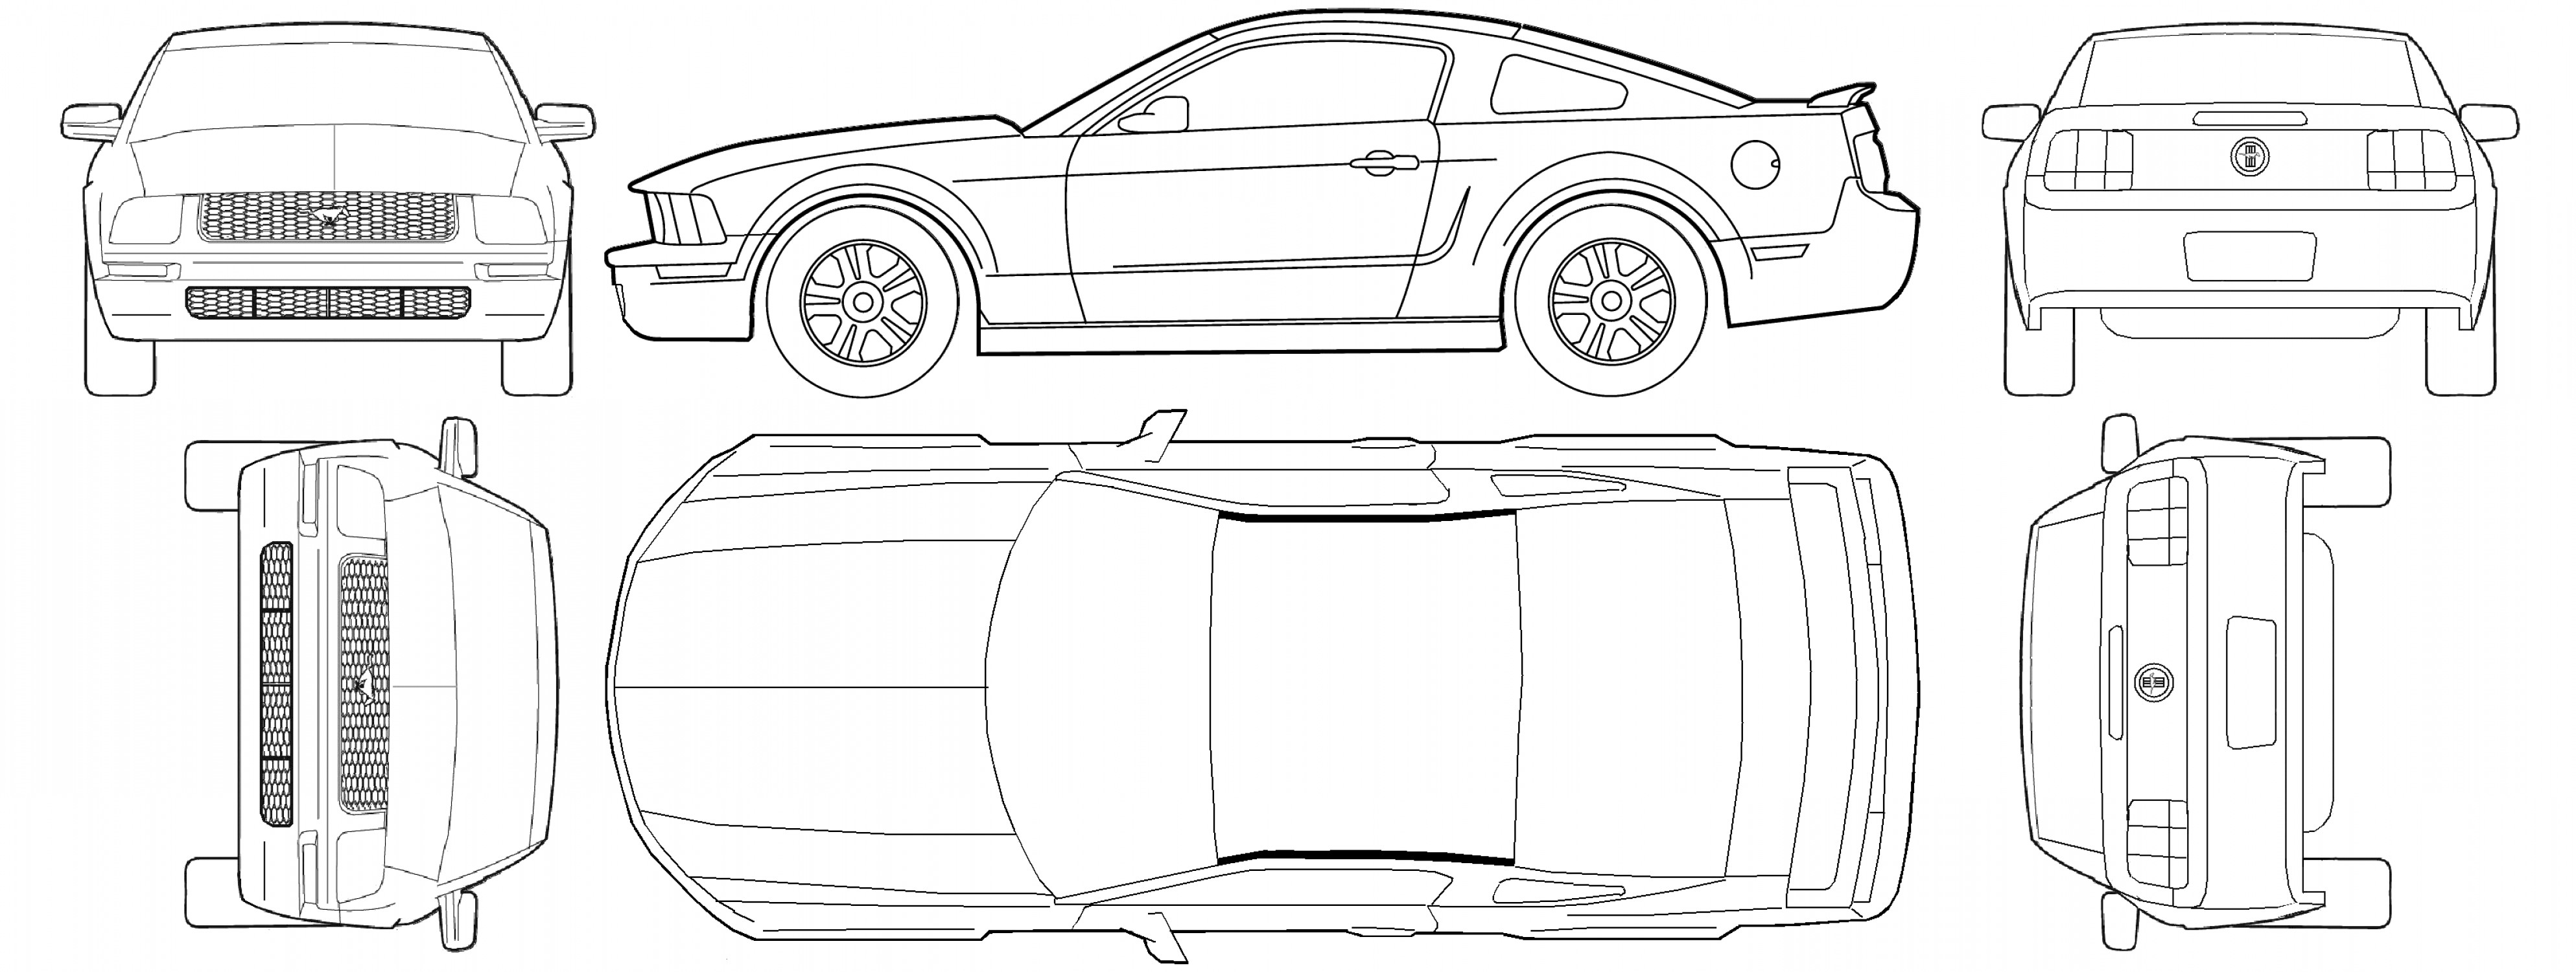 Blueprints Ford Mustang Engine Diagram Auto Electrical Wiring Diagram